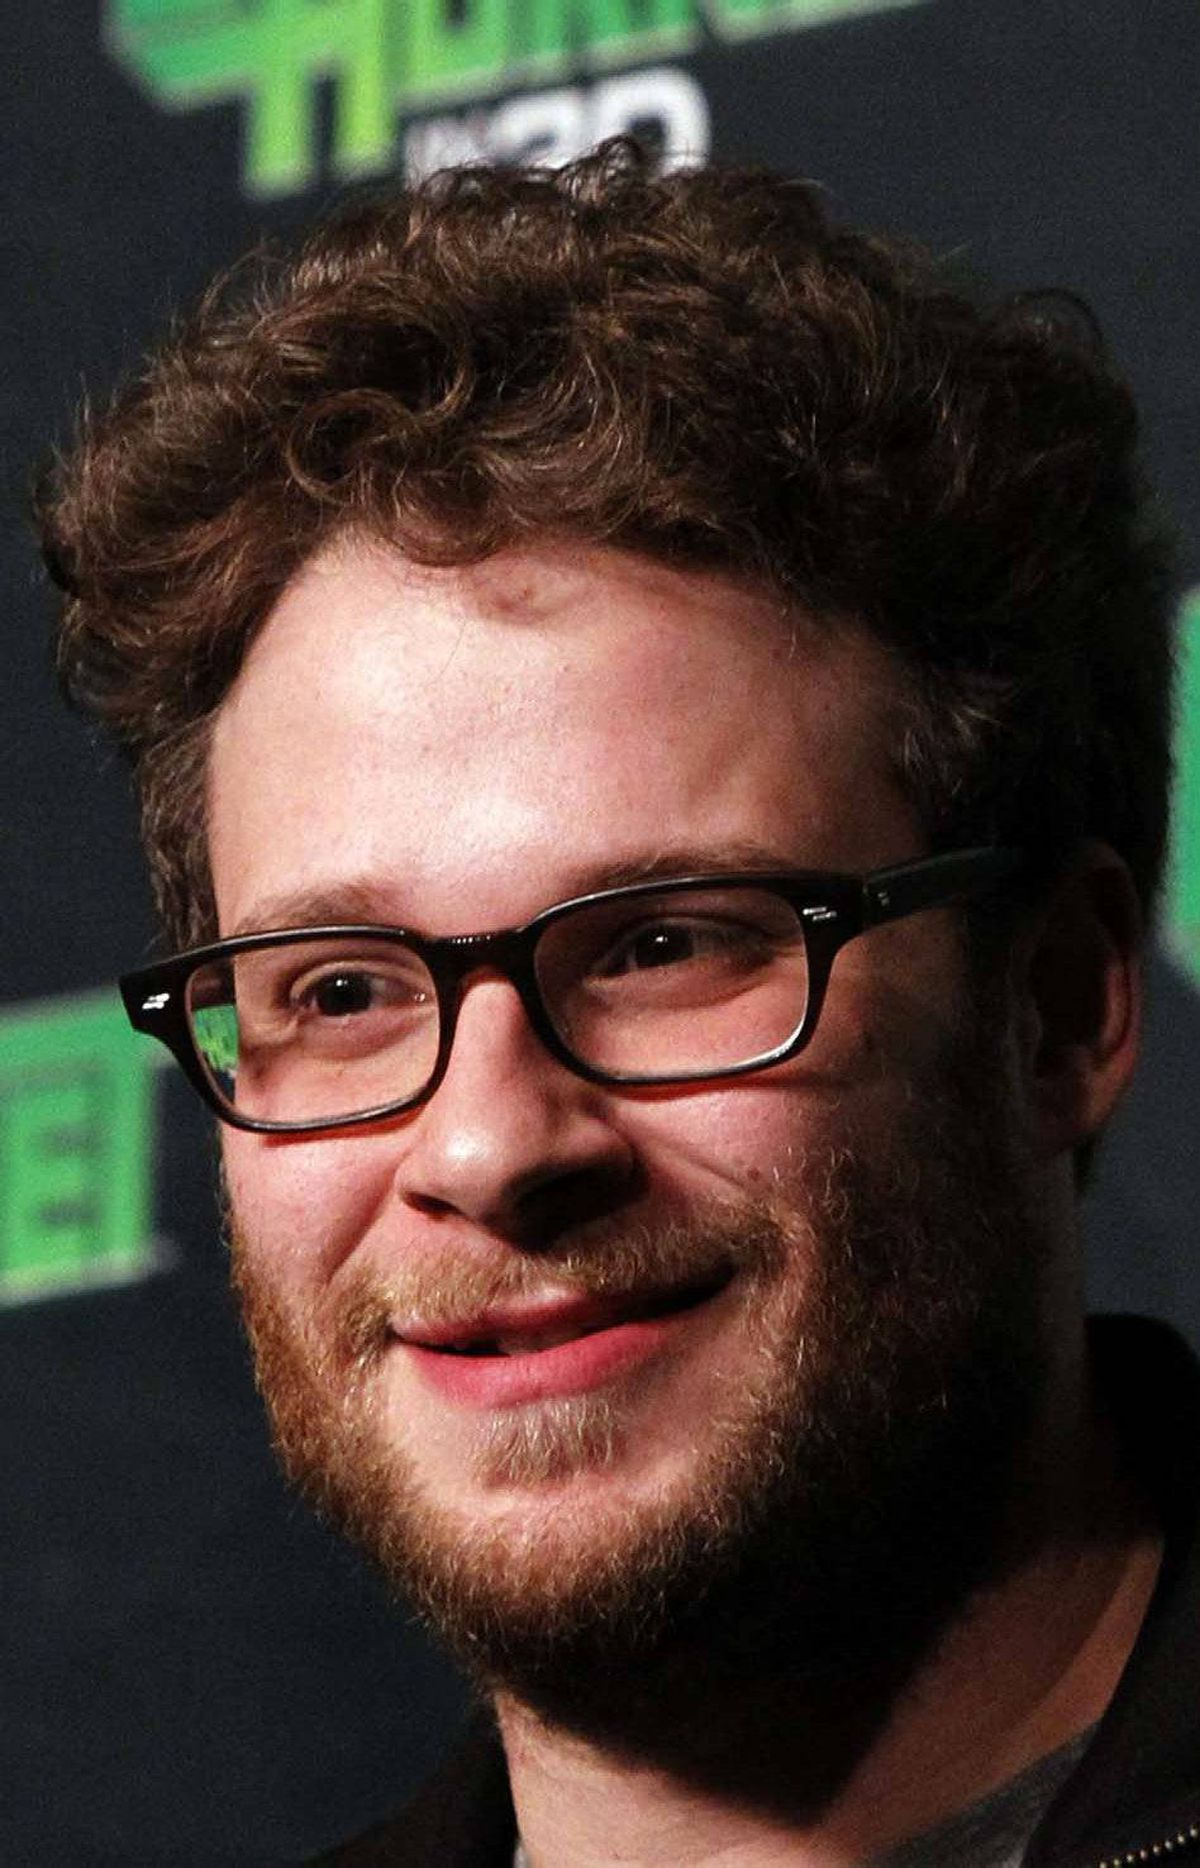 "Canadian actor Seth Rogen appears in three films at TIFF 2011: compatriot director Sarah Polley's ""Take This Waltz""; Morgan Spurlock's documentary ""Comic-Con: Episode IV - A Fan's Hope""; and the cancer comedy ""50/50""."